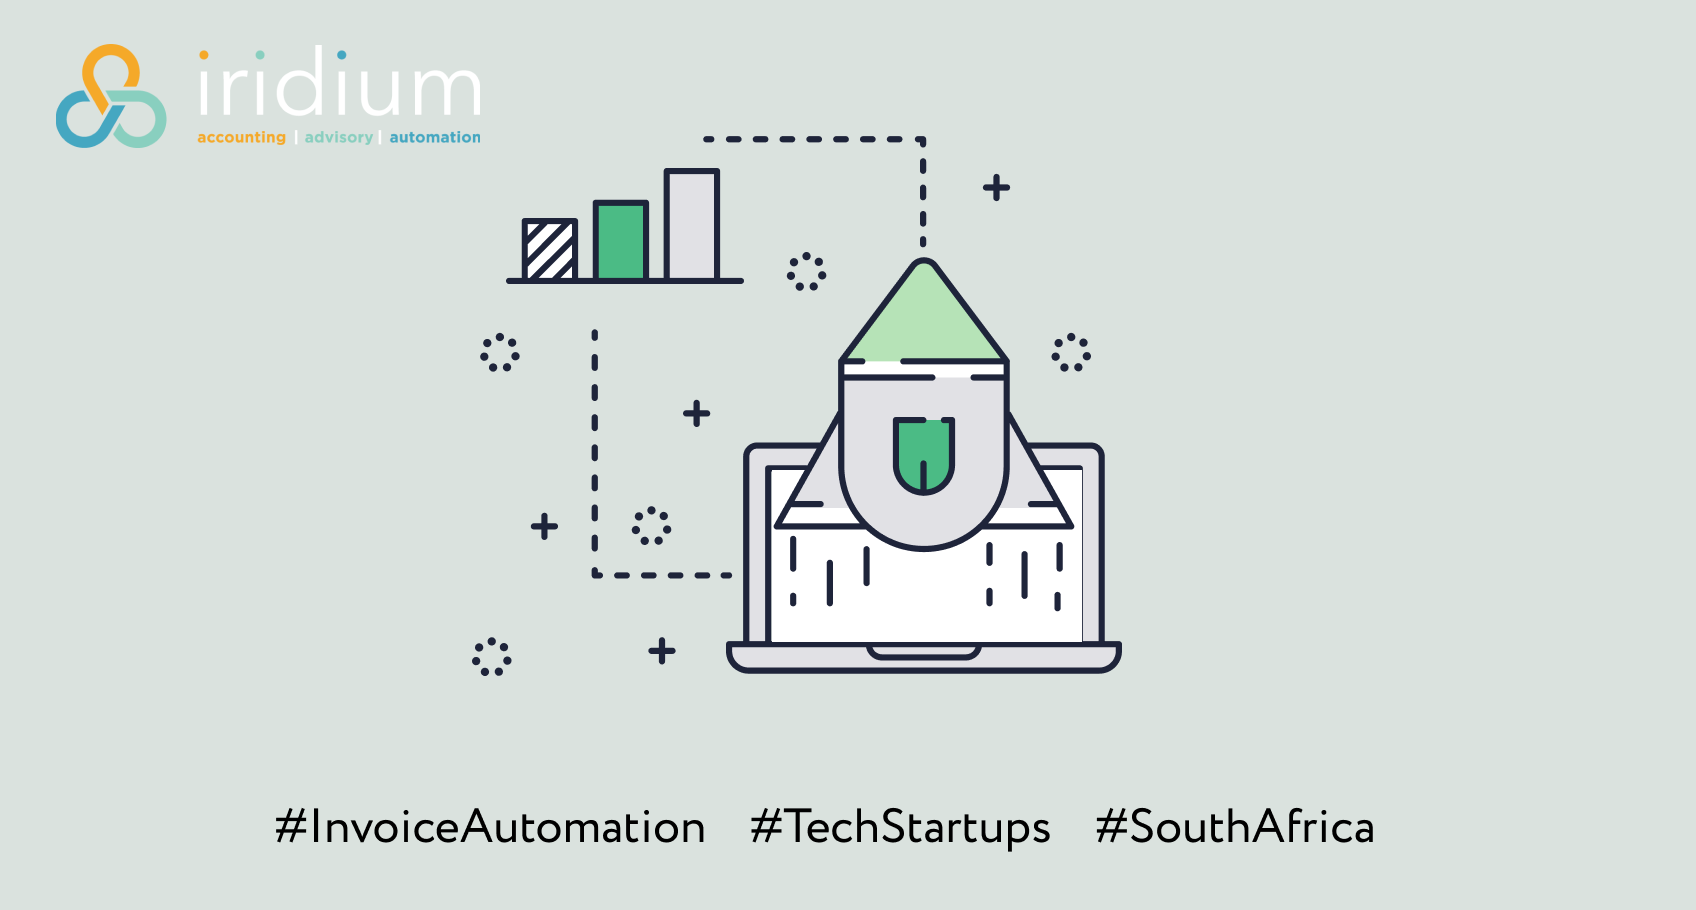 Invoice automation for multinational tech start-ups in Africa